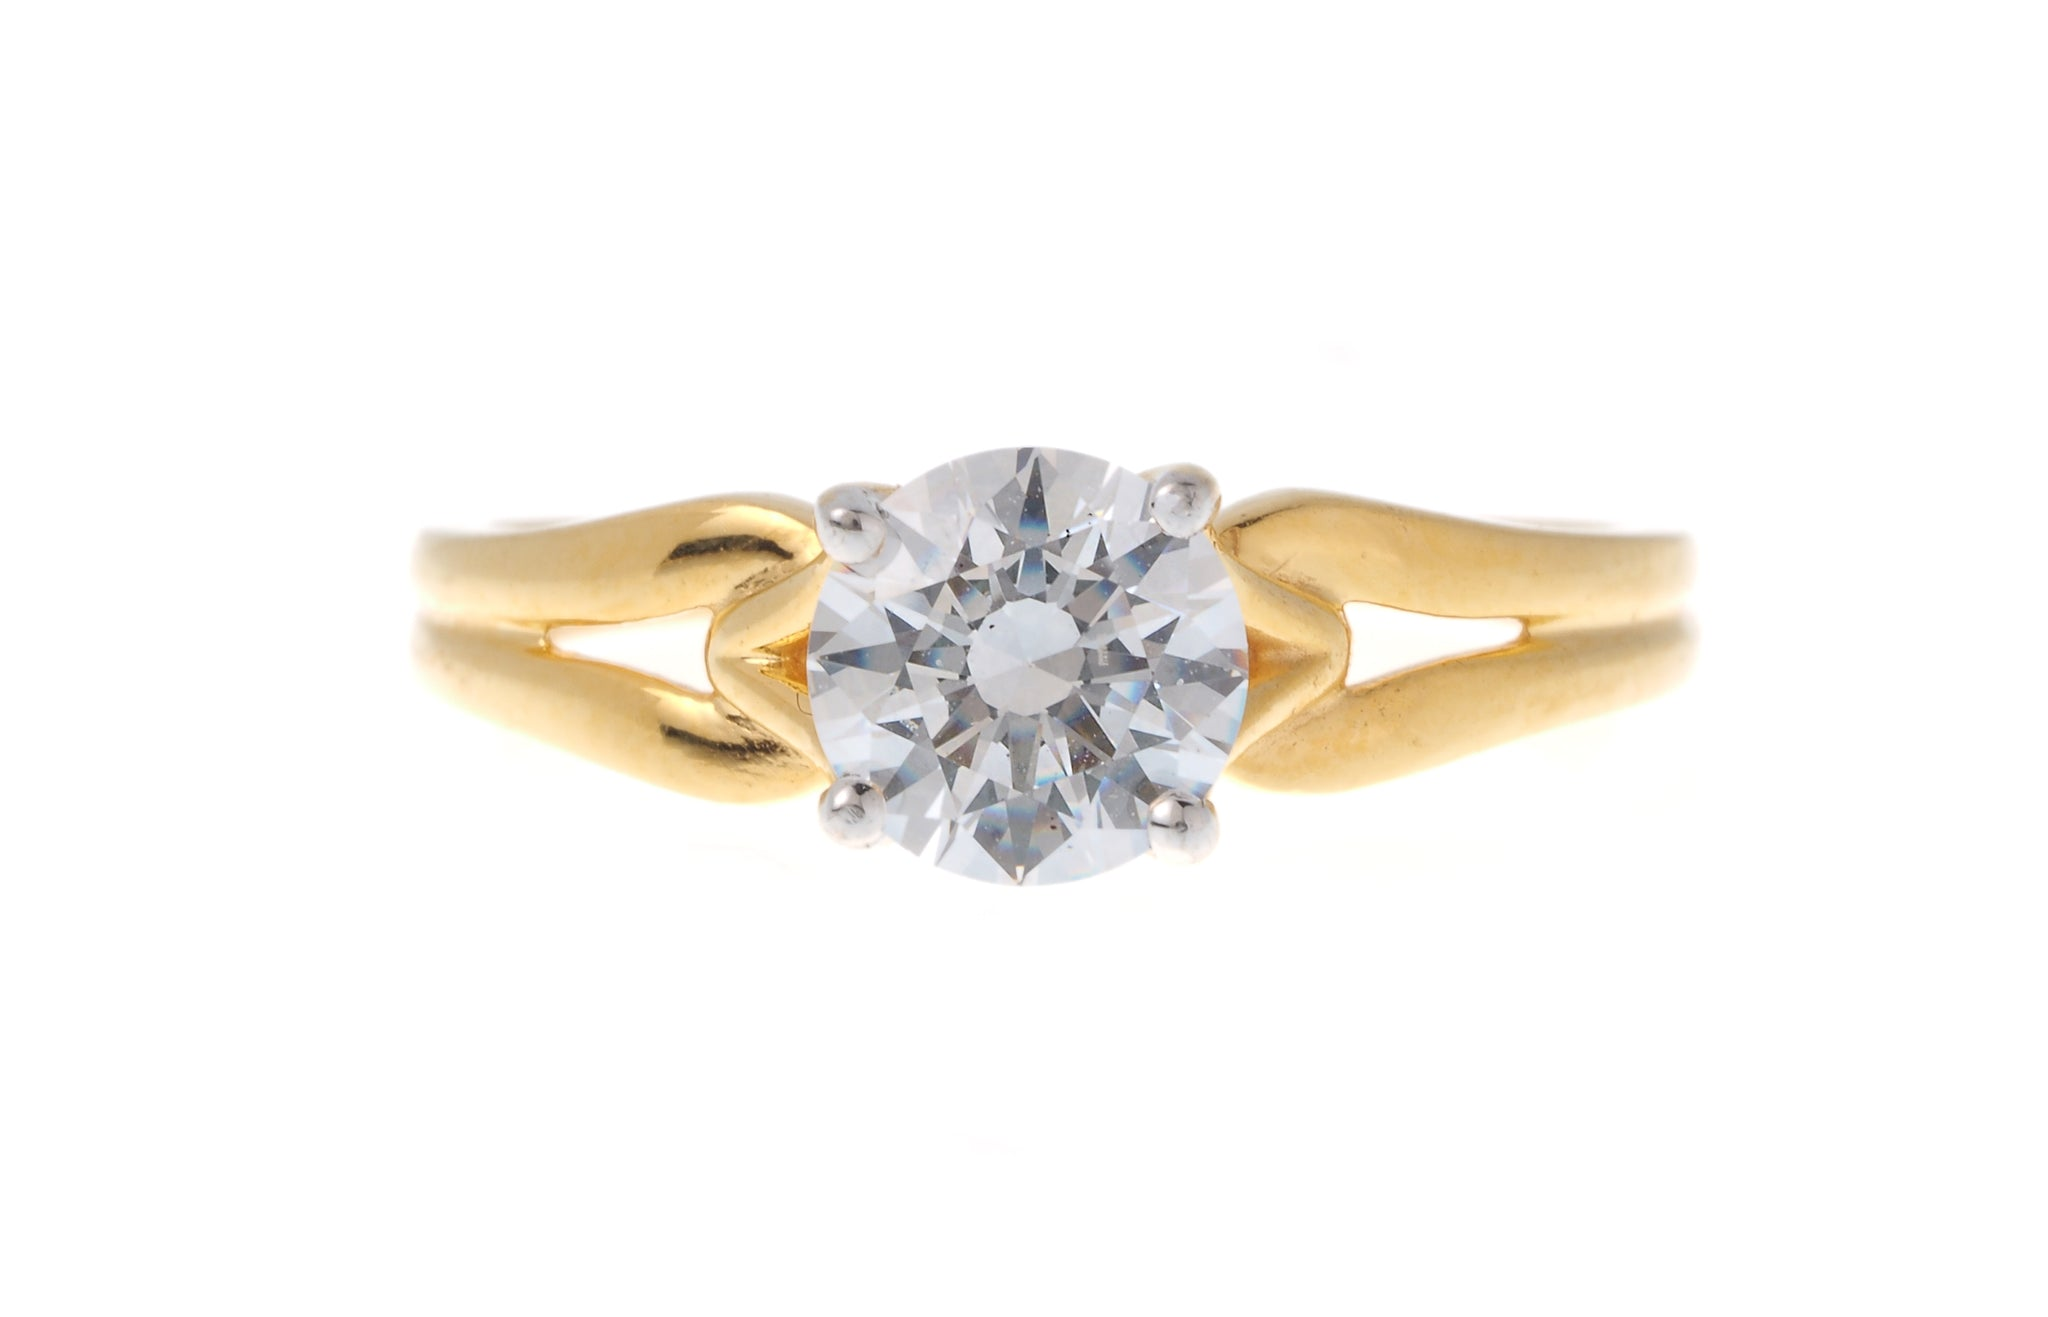 22ct Gold Cubic Zirconia Engagement Ring (LR0266)